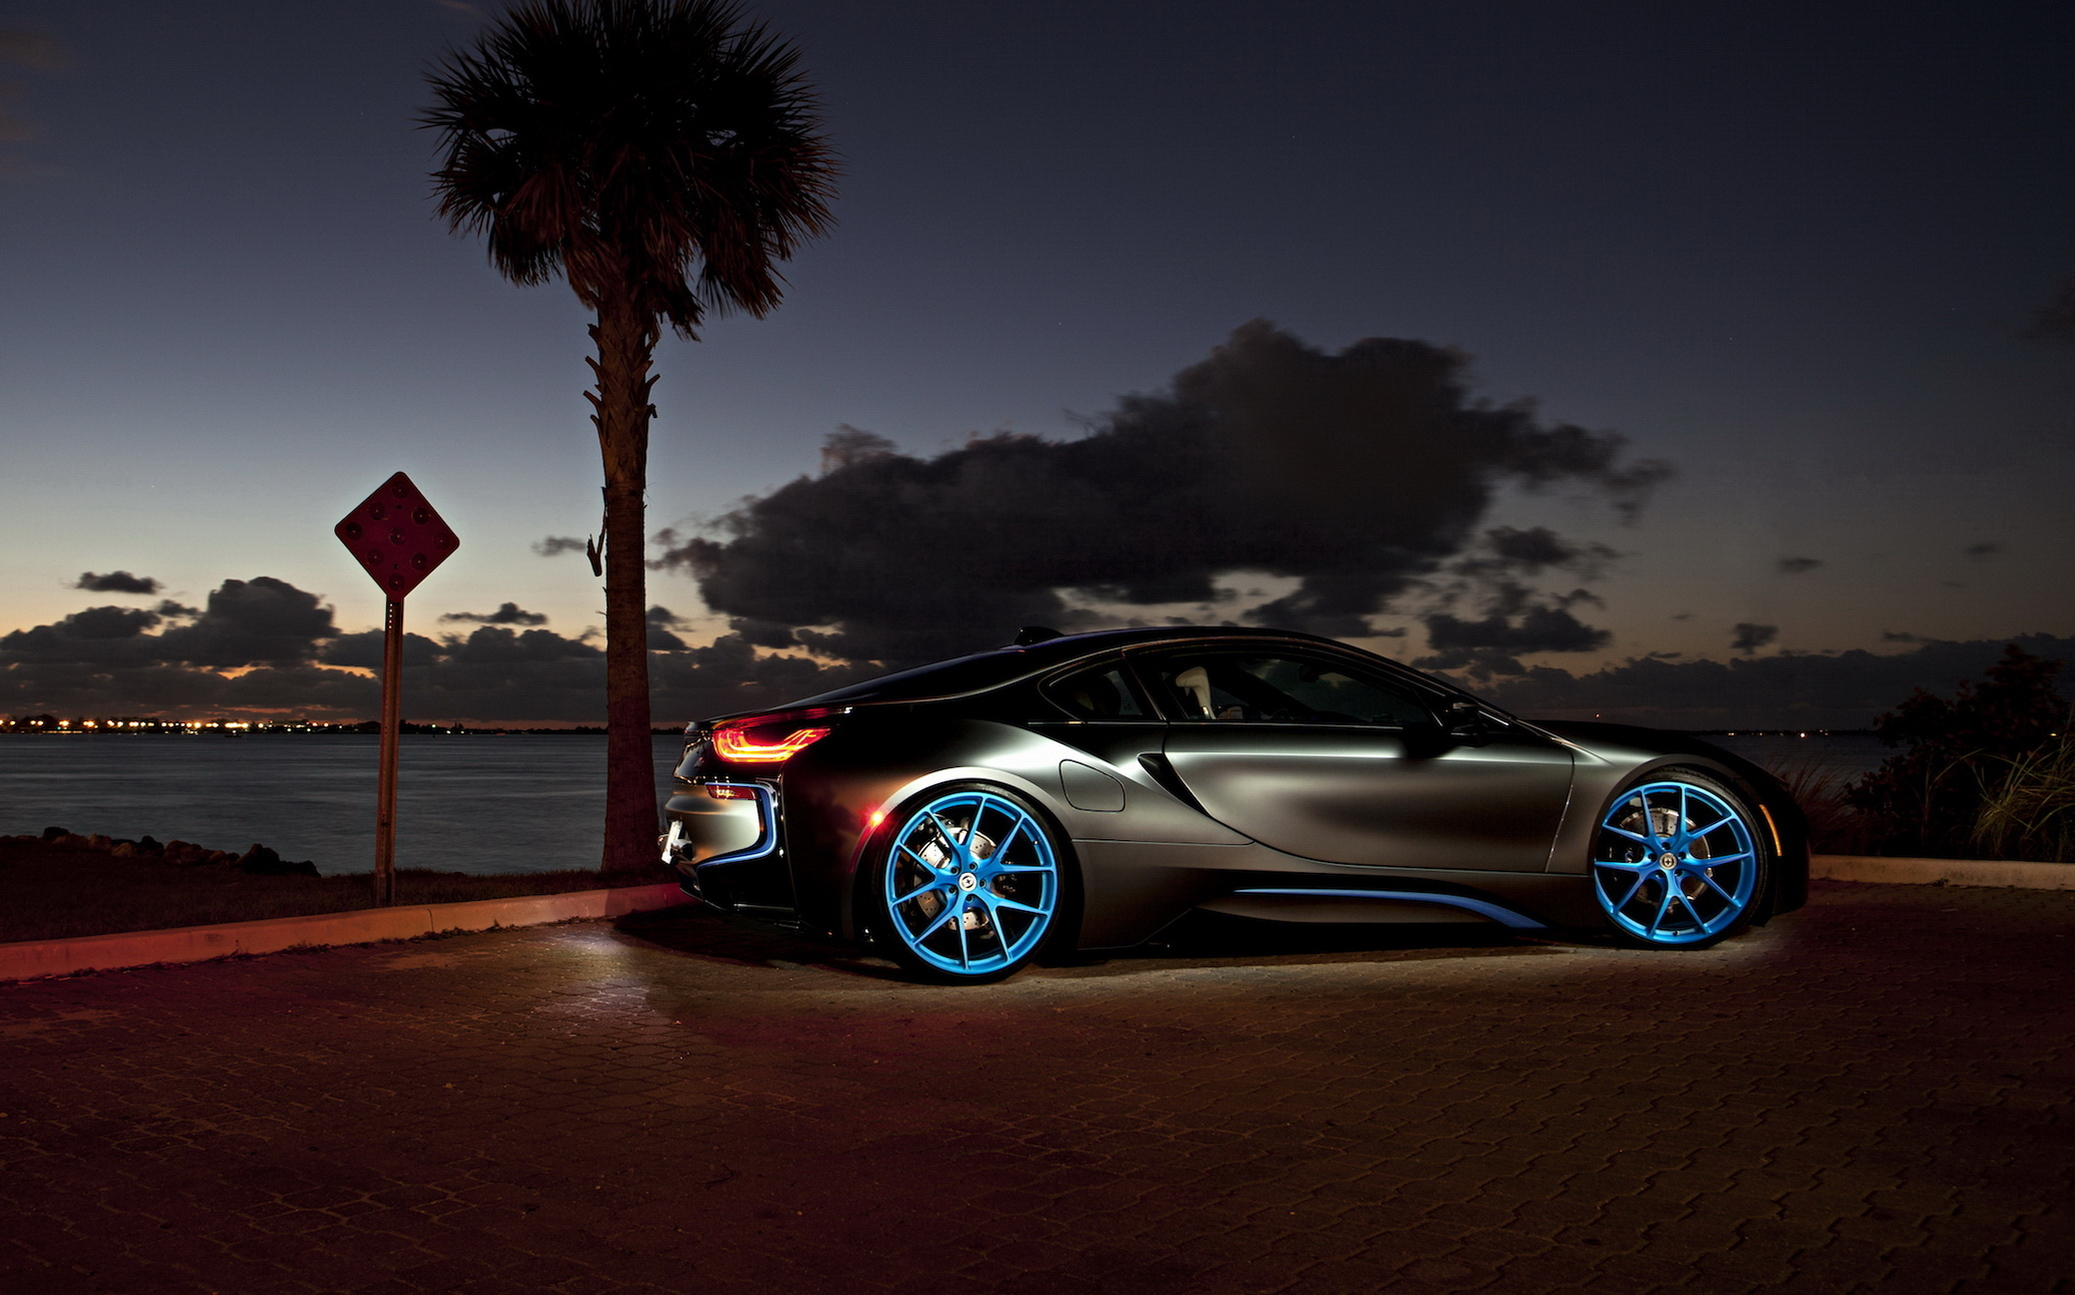 62697 download wallpaper Night, Cars, Side View, Bmw I8 screensavers and pictures for free